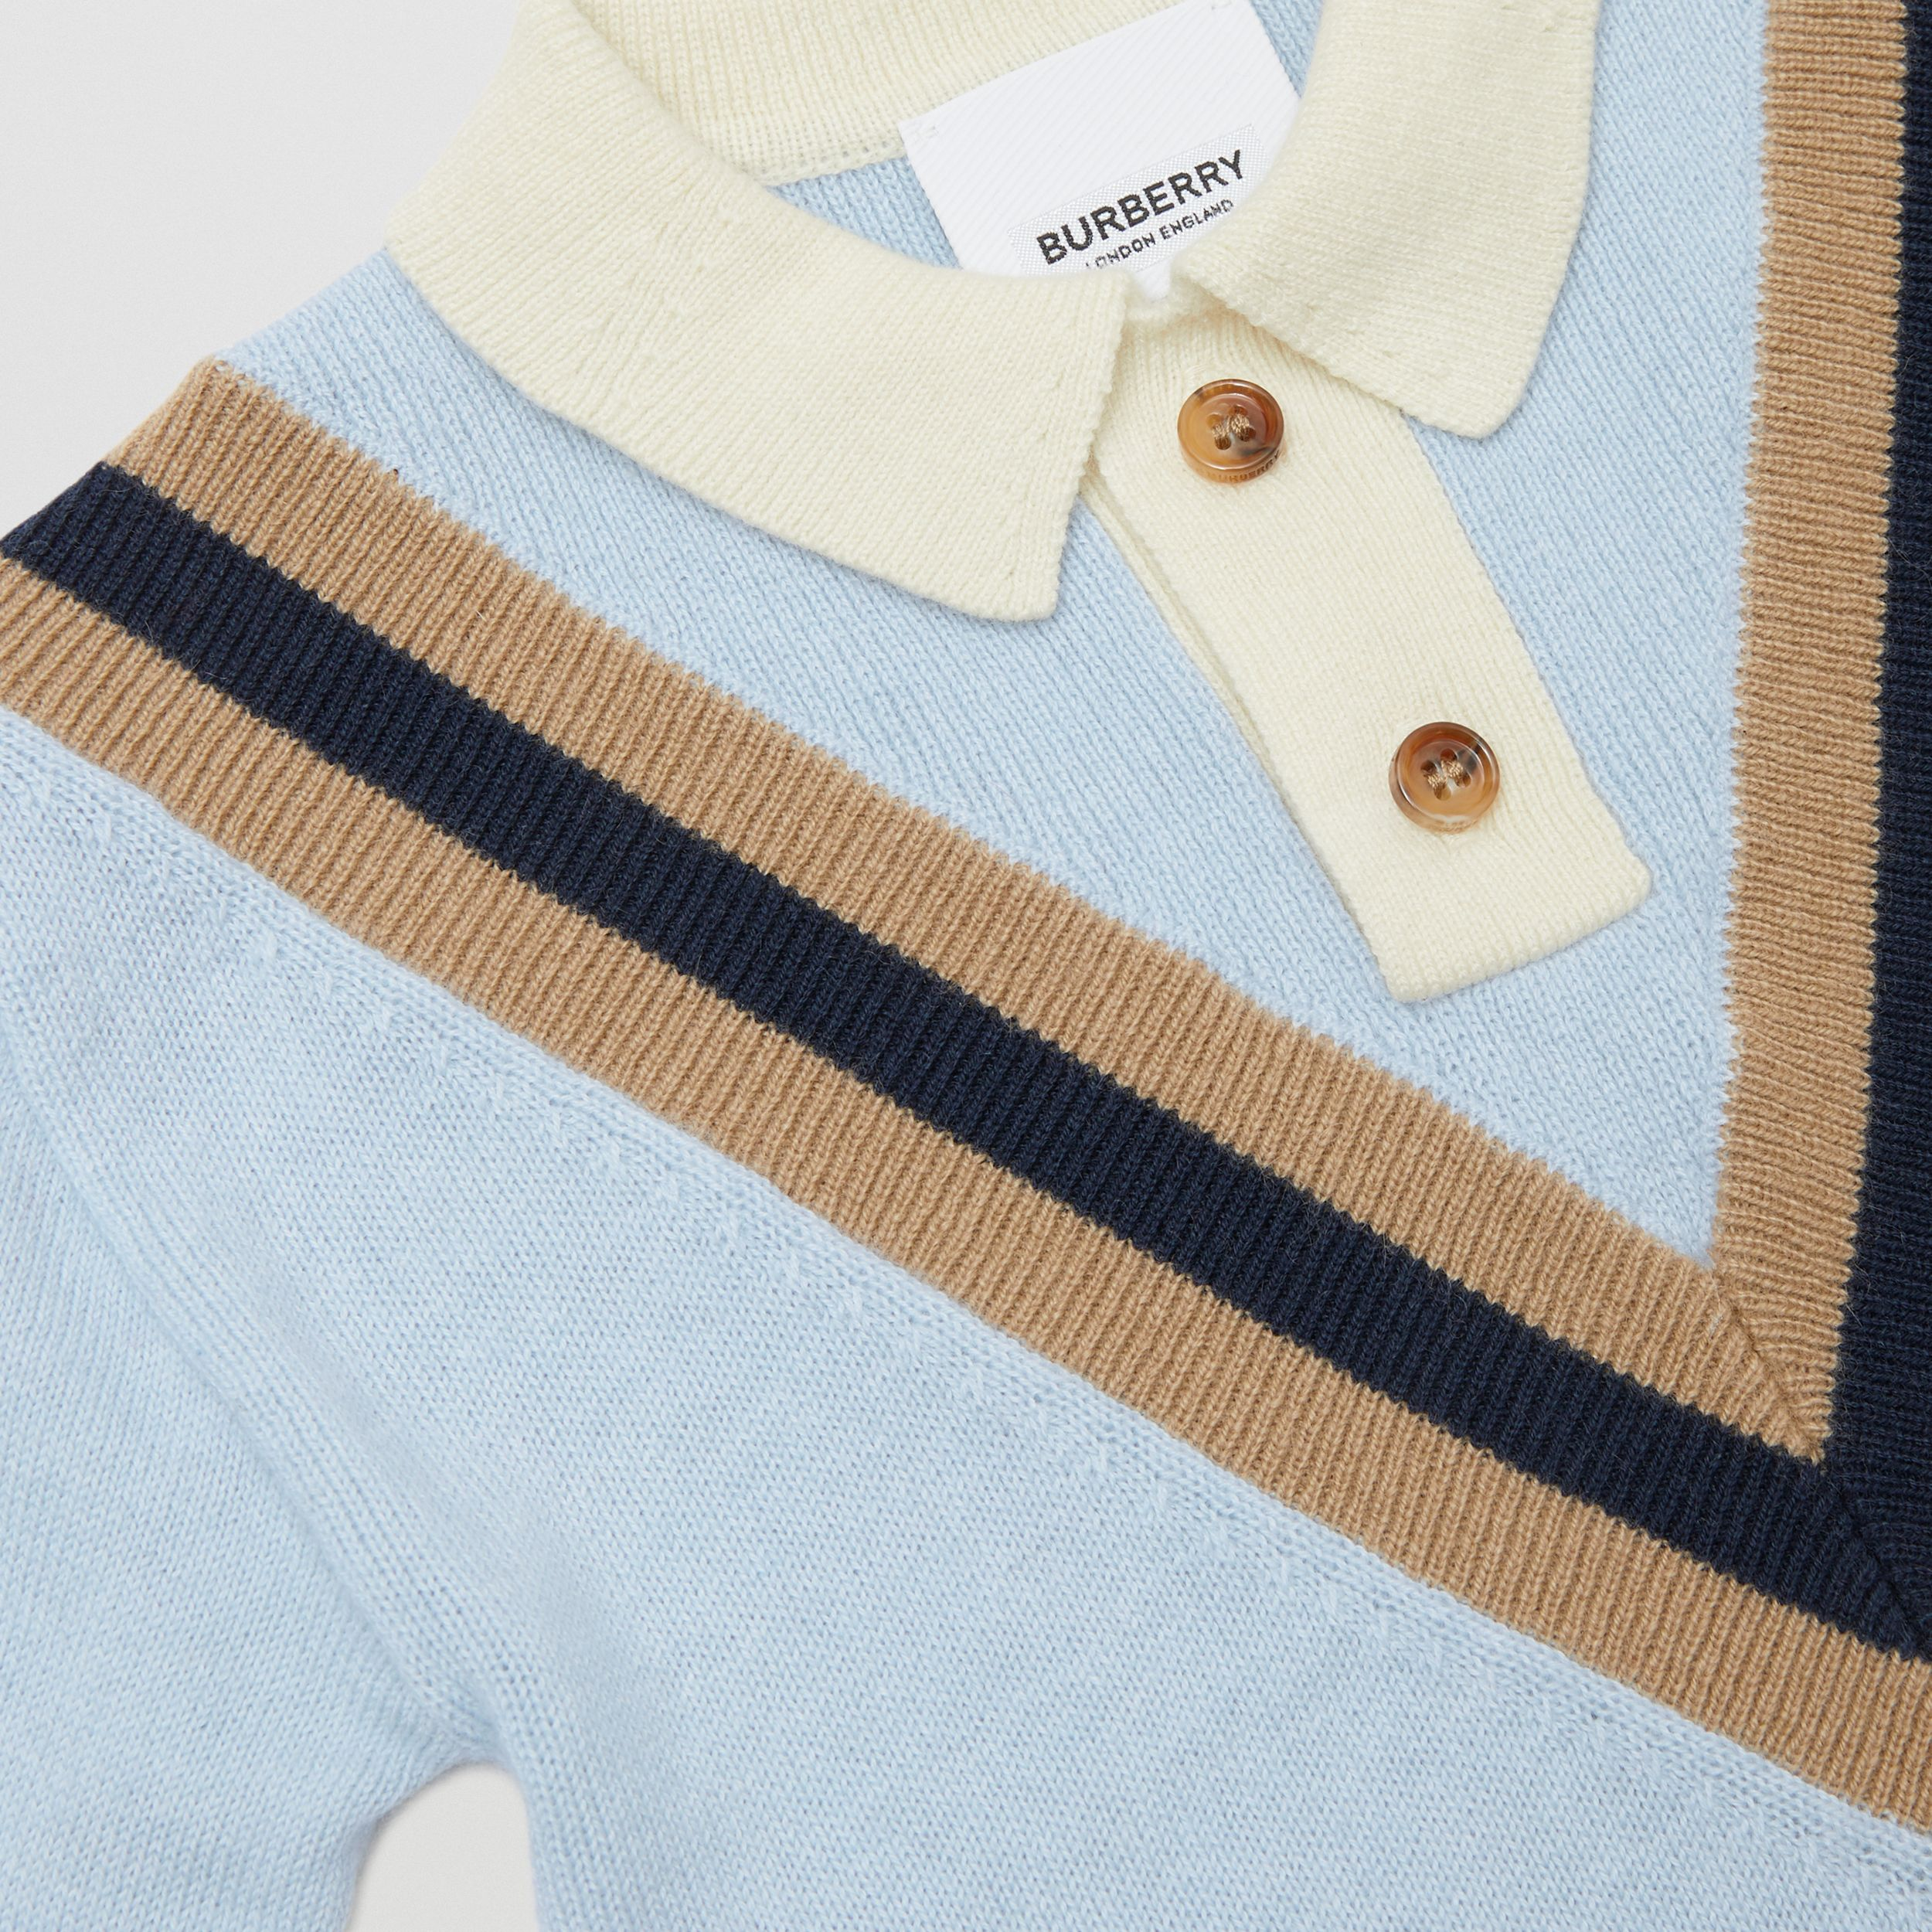 Long-sleeve Knit Cashmere Cotton Polo Shirt in Light Blue - Children | Burberry - 2